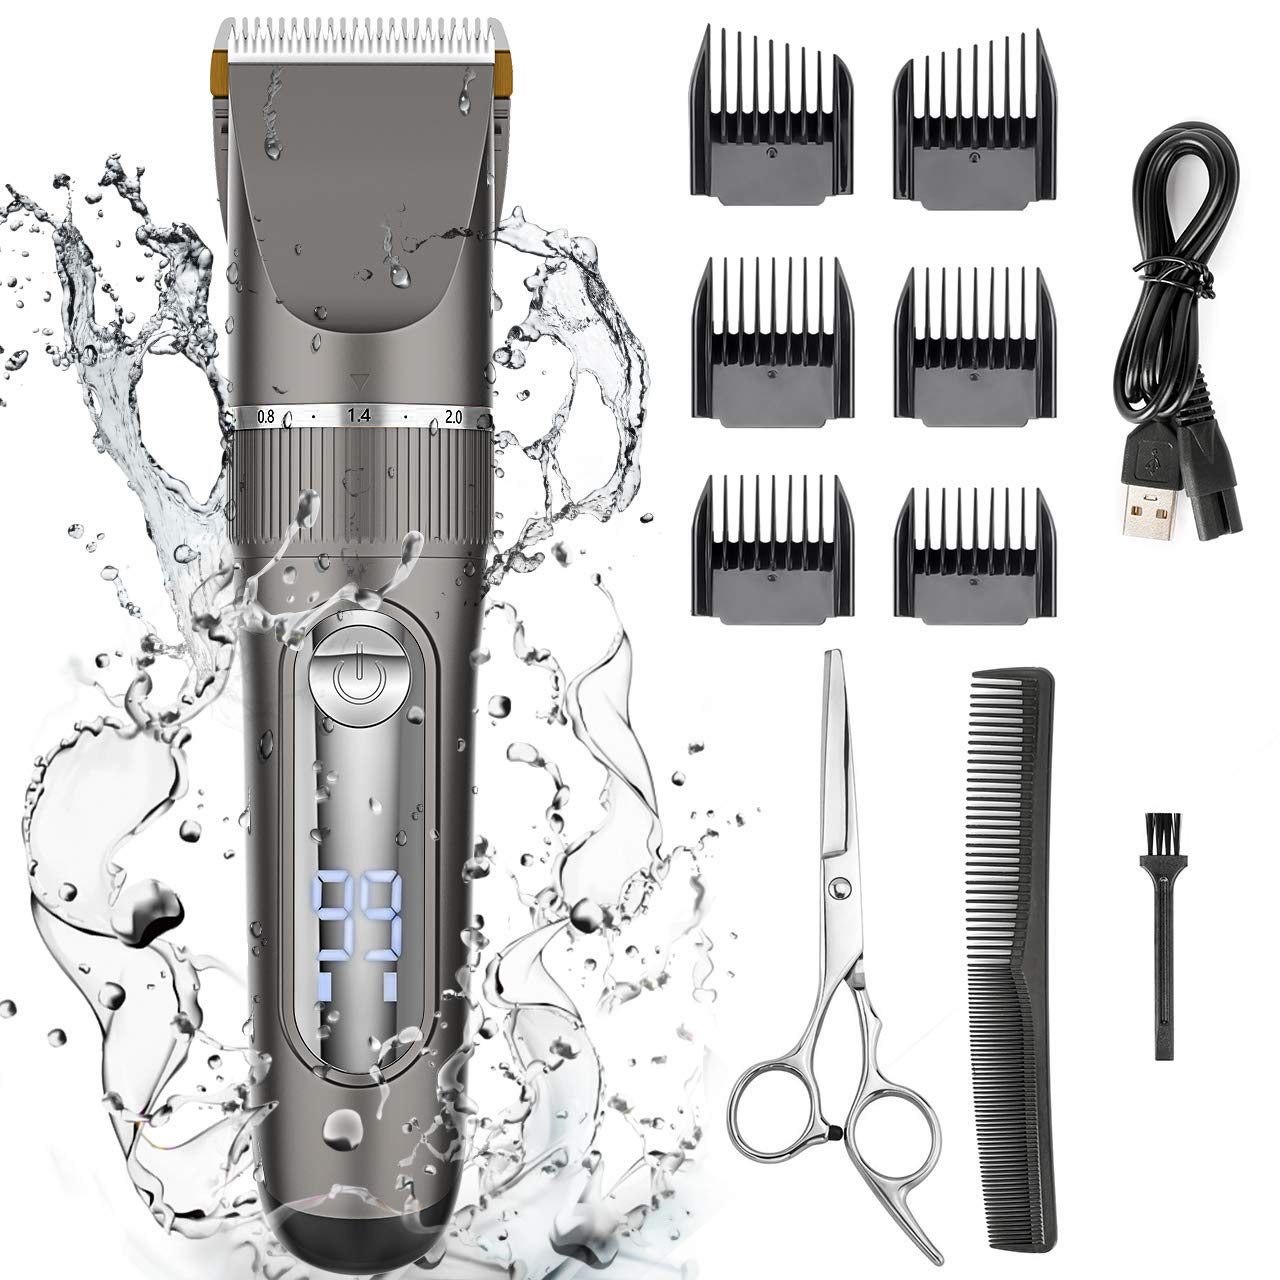 Nicewell Hair Clippers for Men Kids Waterproof Cordless Hair Trimmer Electric Machines, with Hair Scissors & Guard Combs